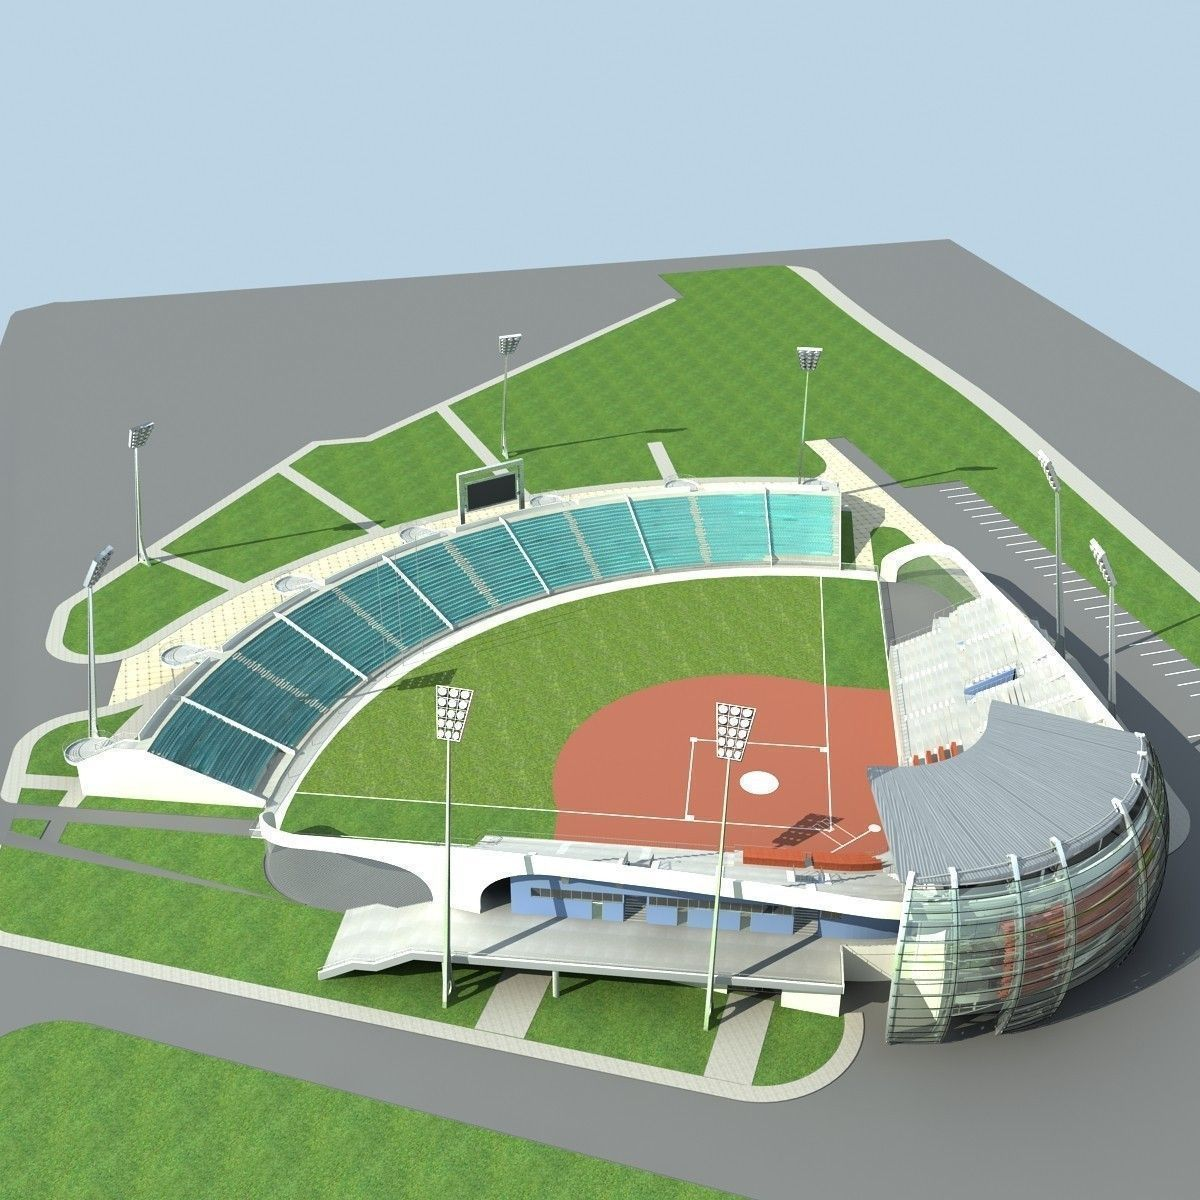 3d stadium design widescreen - photo #17